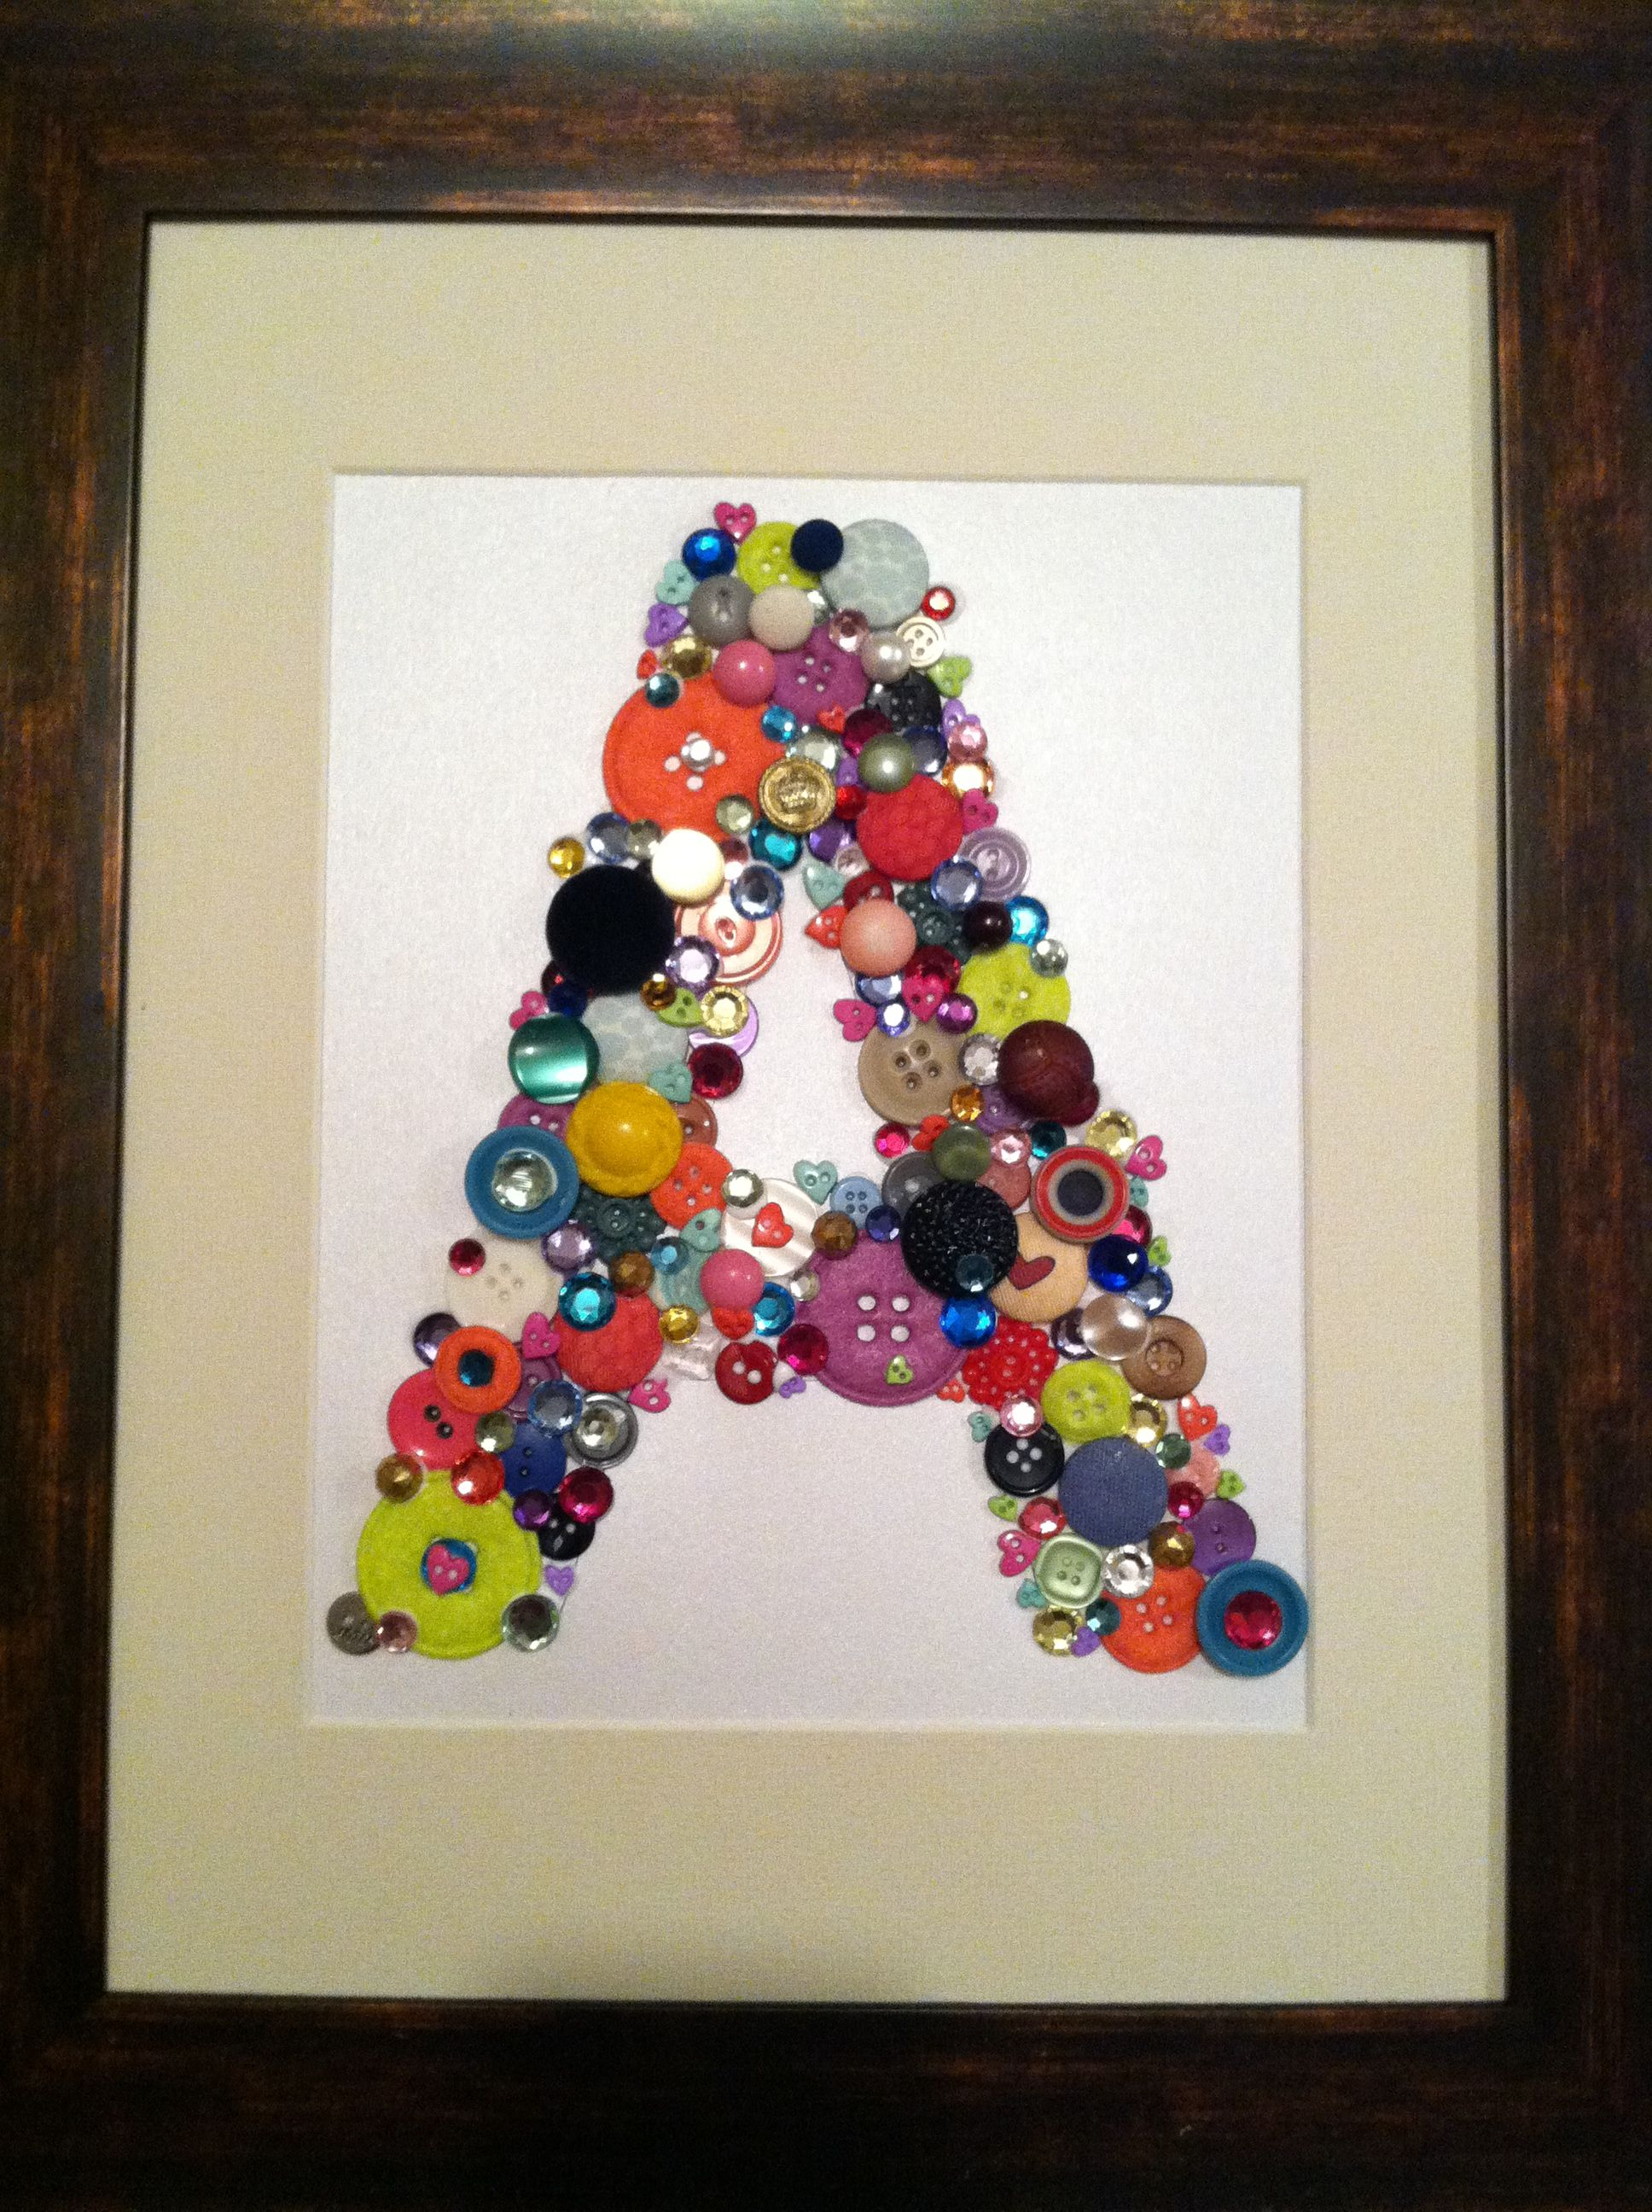 Just finished this button letter for the little 2 year old girl I